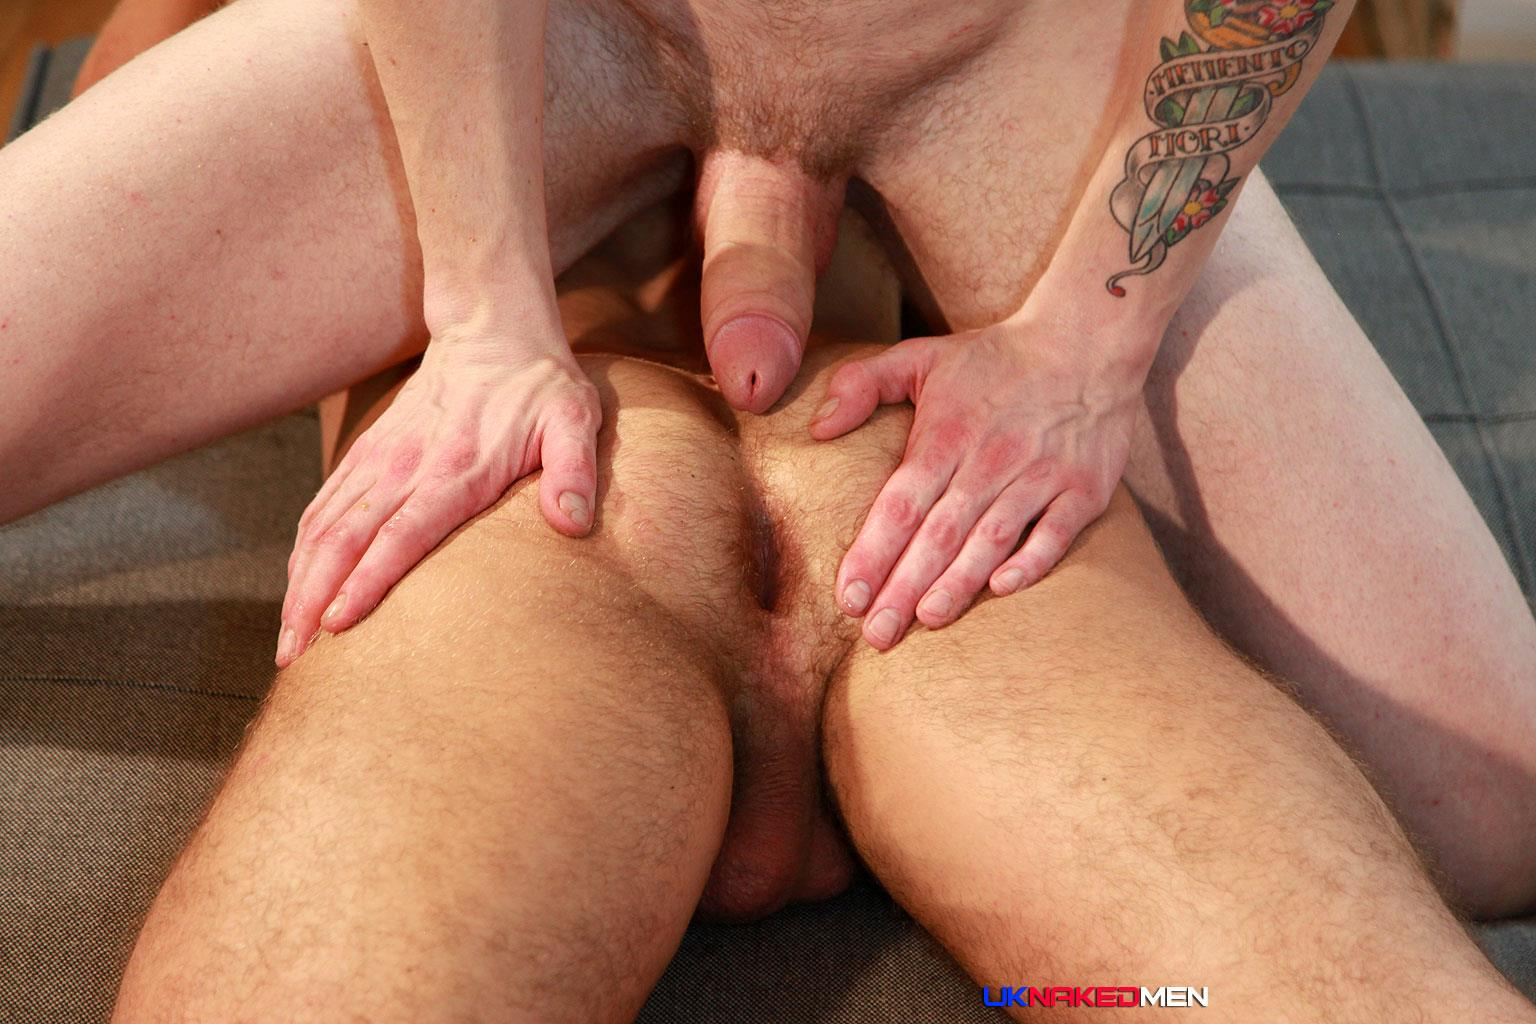 UK Naked Men AJ Alexander and Patryk Jankowski Big Uncut Cock Bareback Sex Amateur Gay Porn 22 Hairy Muscle Hunk Gets Fucked By A Scottish Guy With A Big Uncut Cock